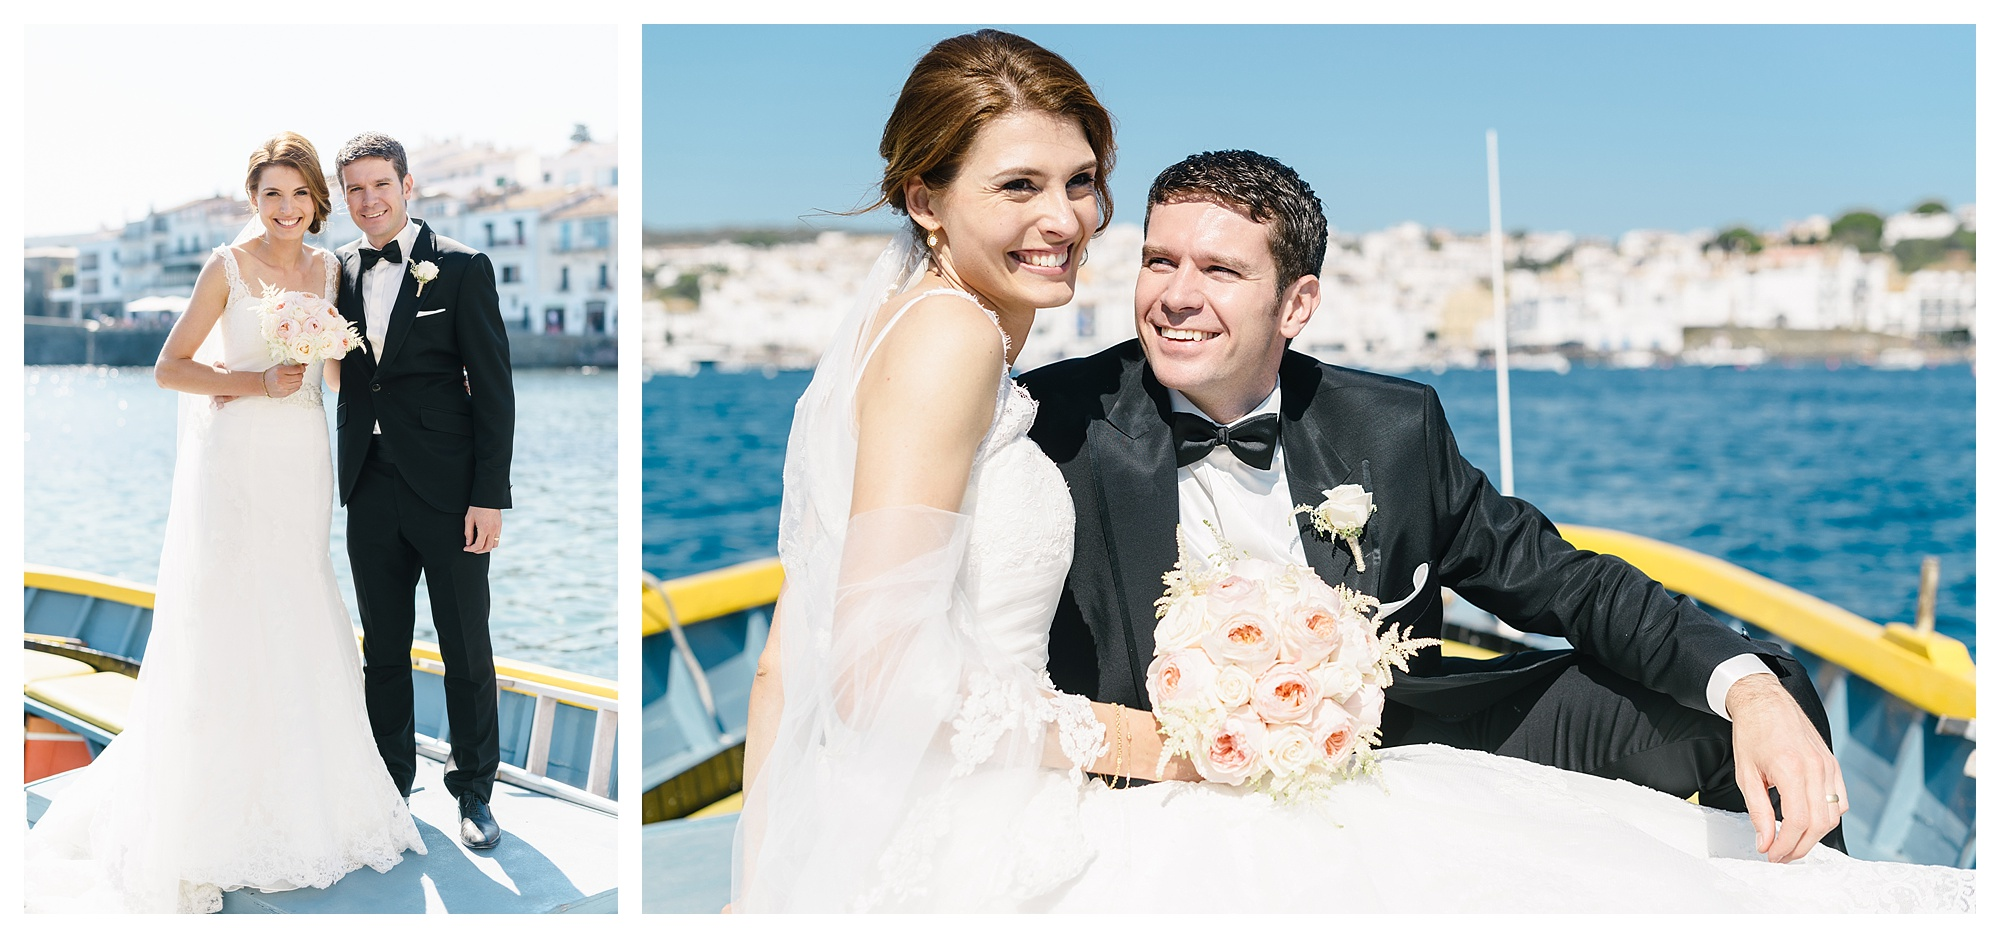 Fotograf Konstanz - Wedding Spain Cadaques Elmar Feuerbacher Photography 25 - Als Destination Wedding Fotograf in Cadaqués, Spanien  - 25 -